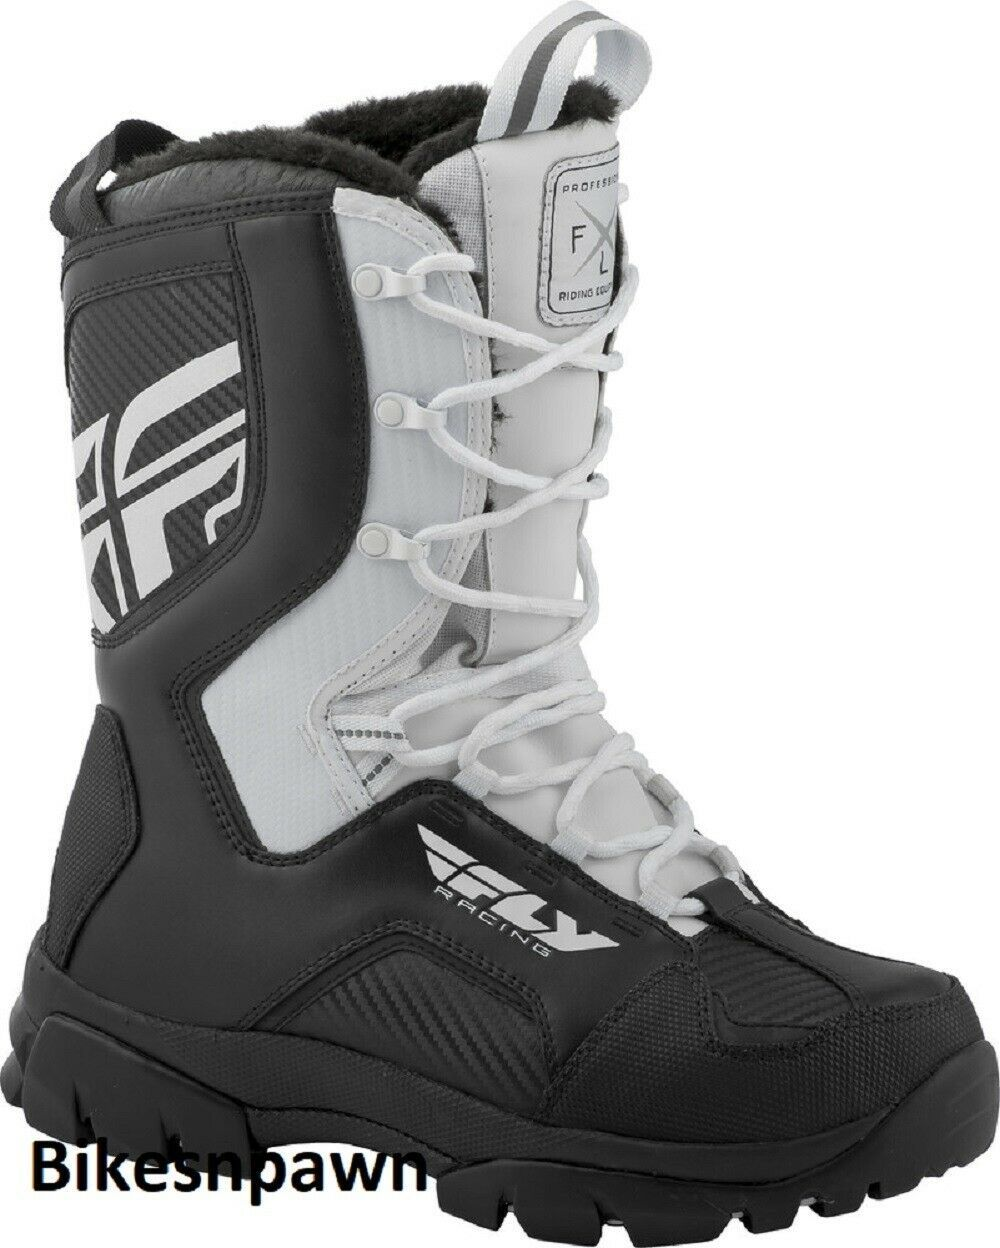 New Mens FLY Racing Marker Black/White Size 8 Snowmobile Winter Snow Boots -40 F